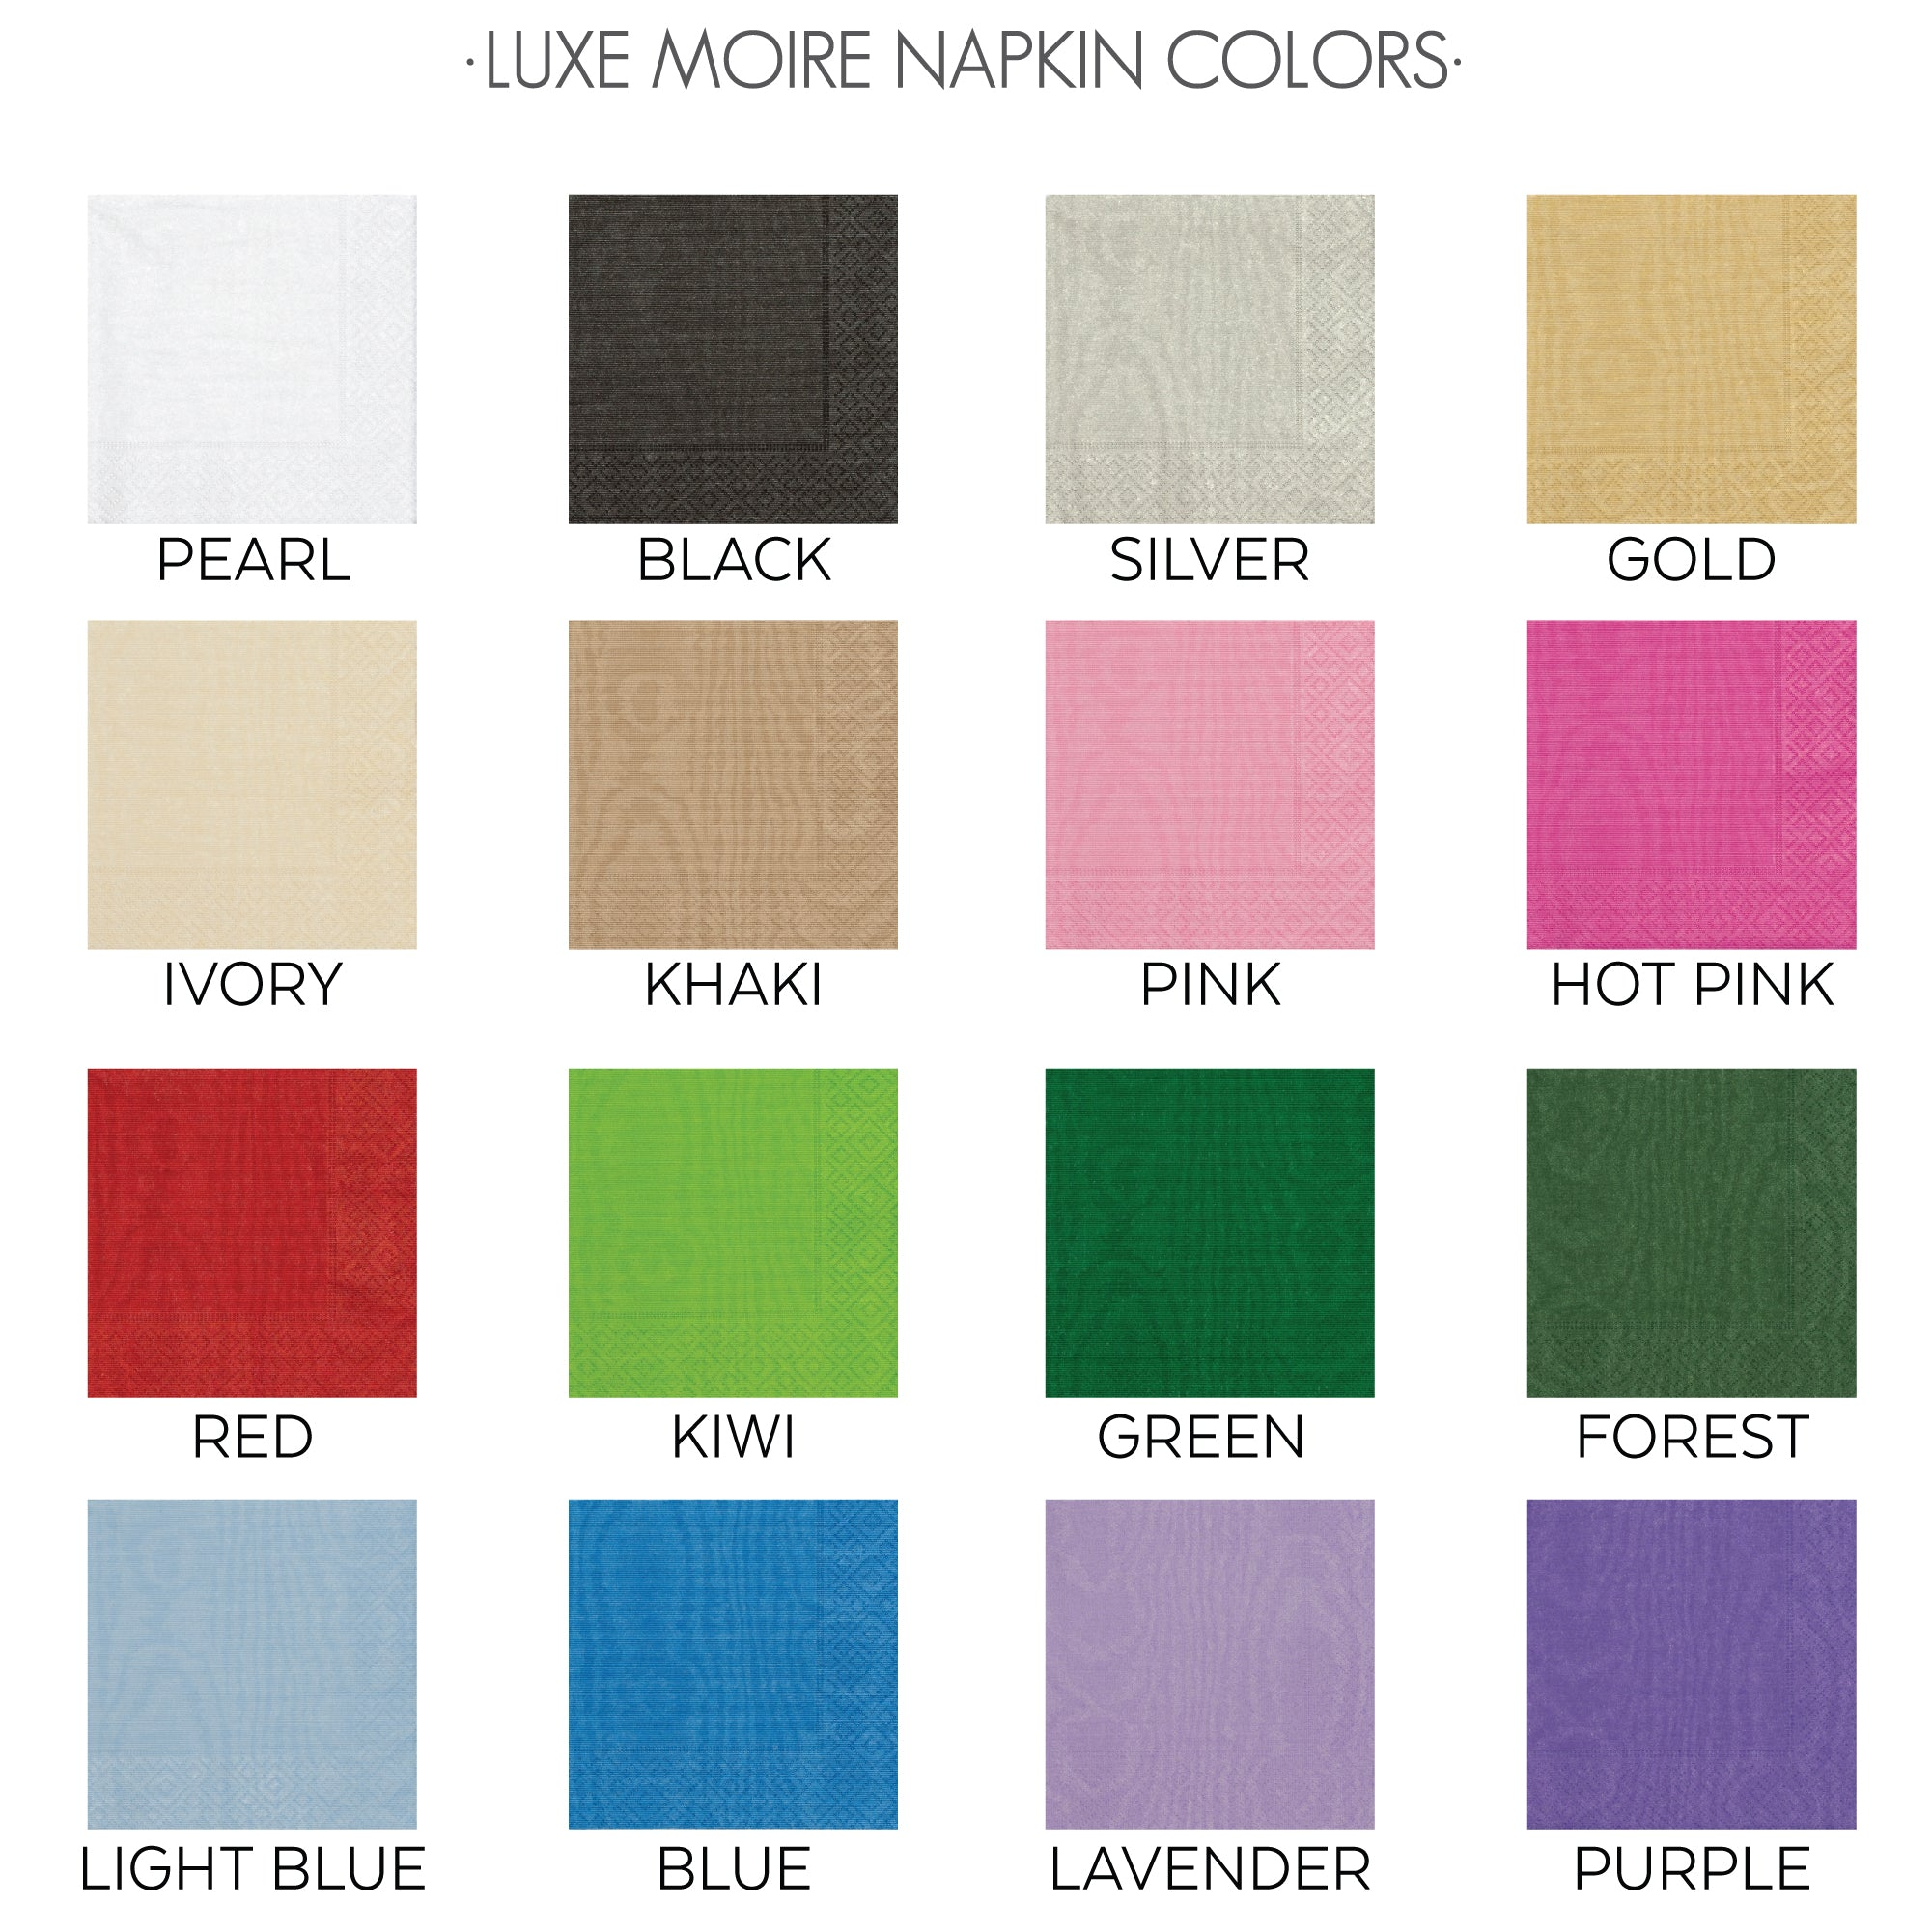 Luxe Moire Napkin Colors